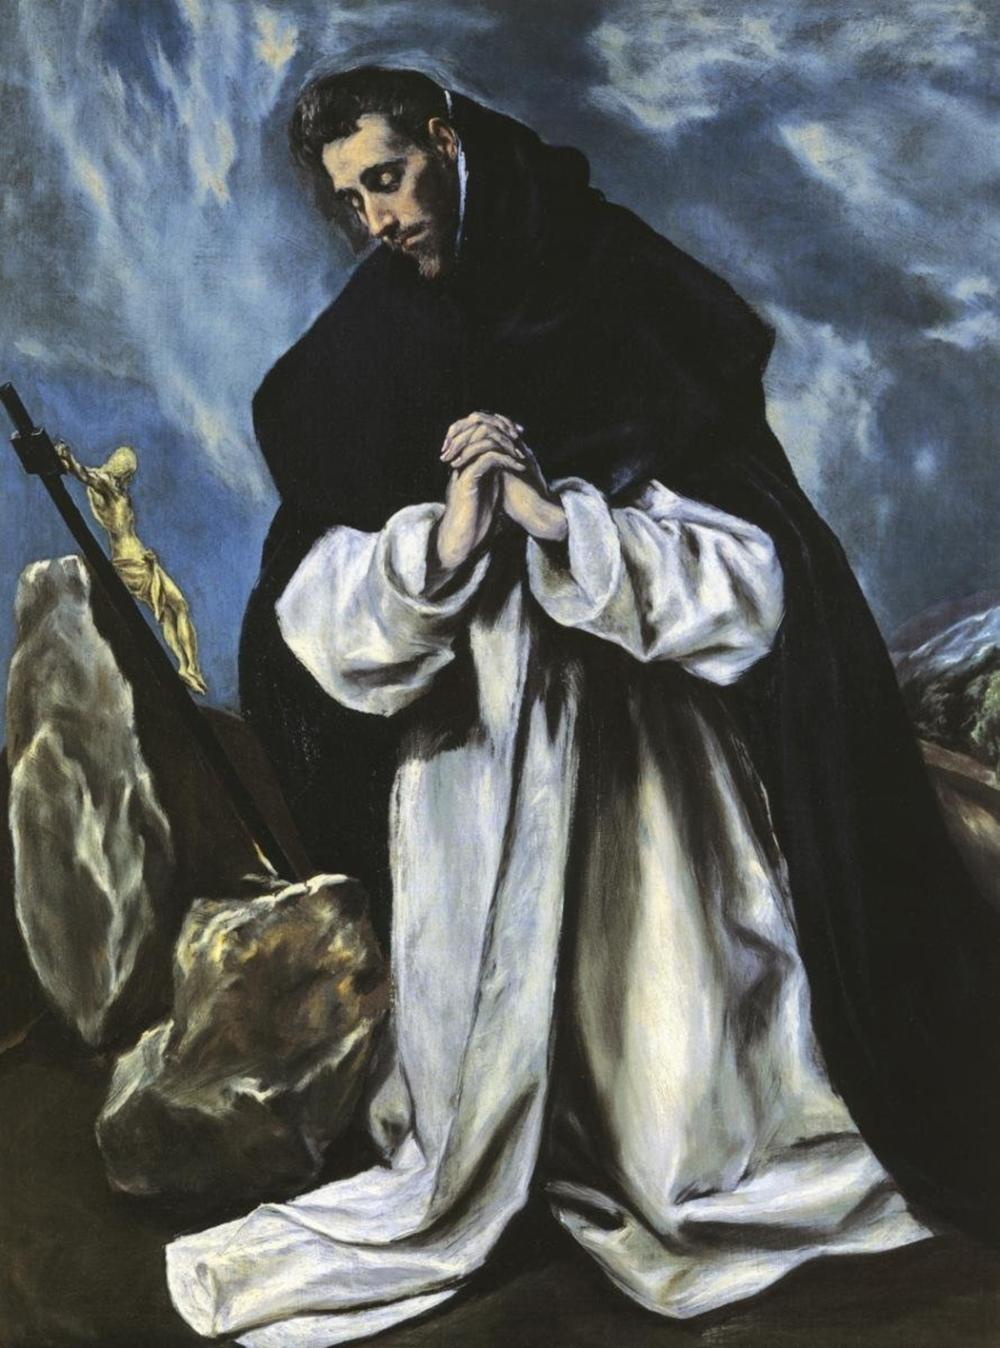 EL GRECO - SAINT DOMINIC IN PRAYER